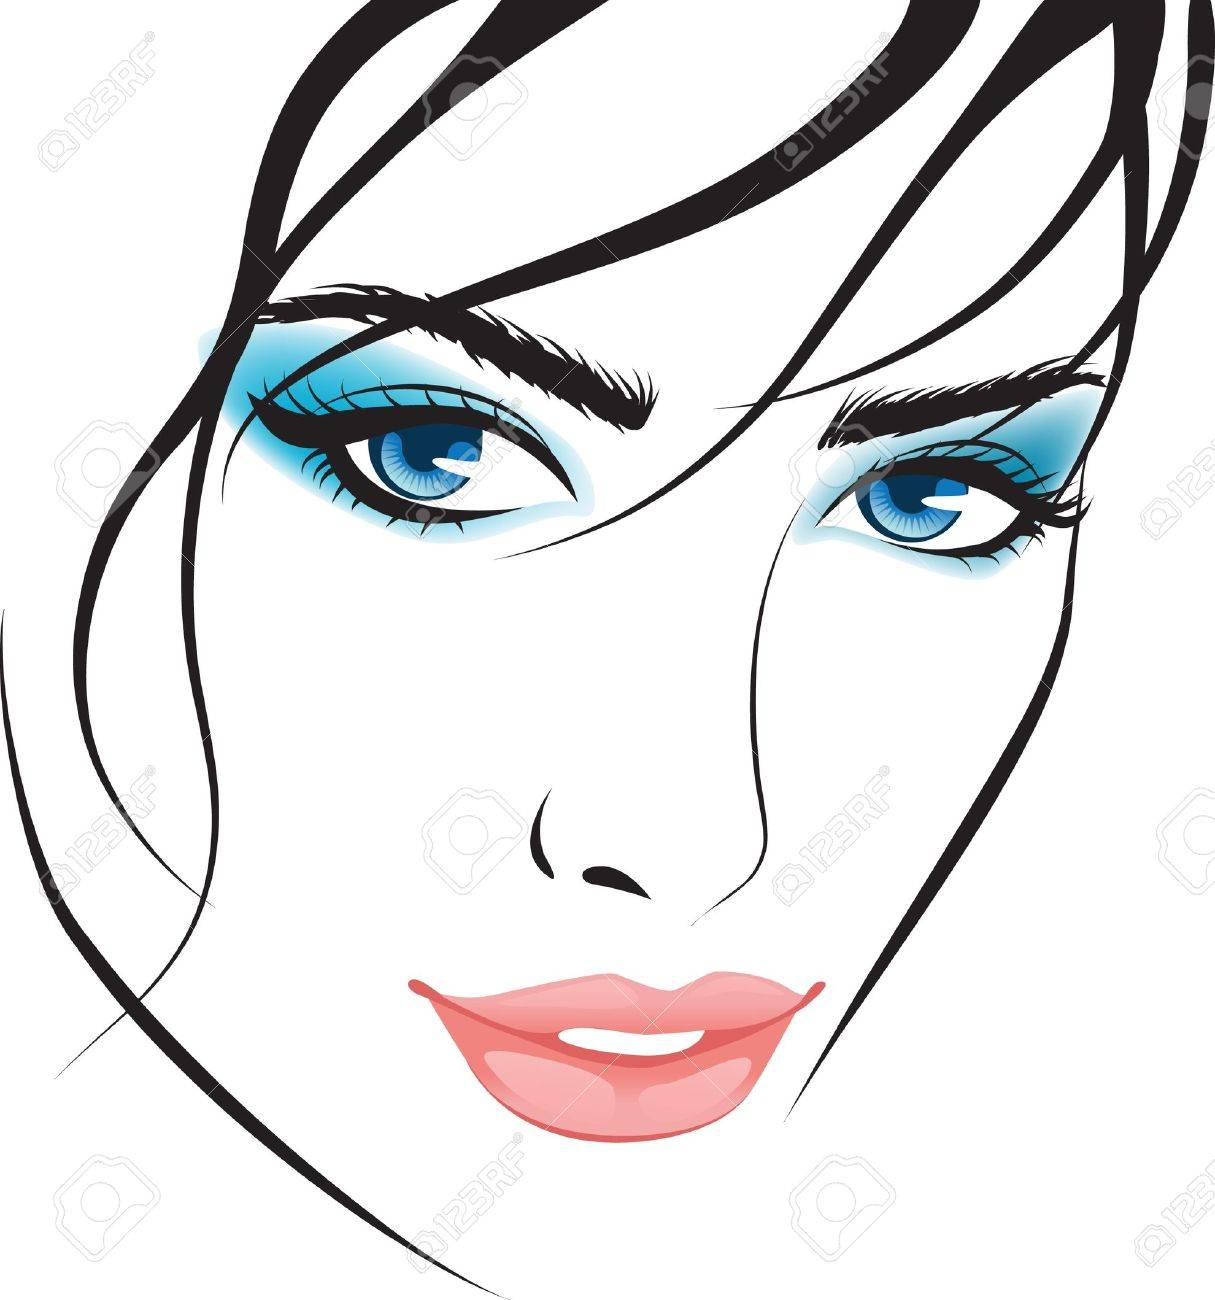 beauty girl face. design elements Stock Vector - 8340855